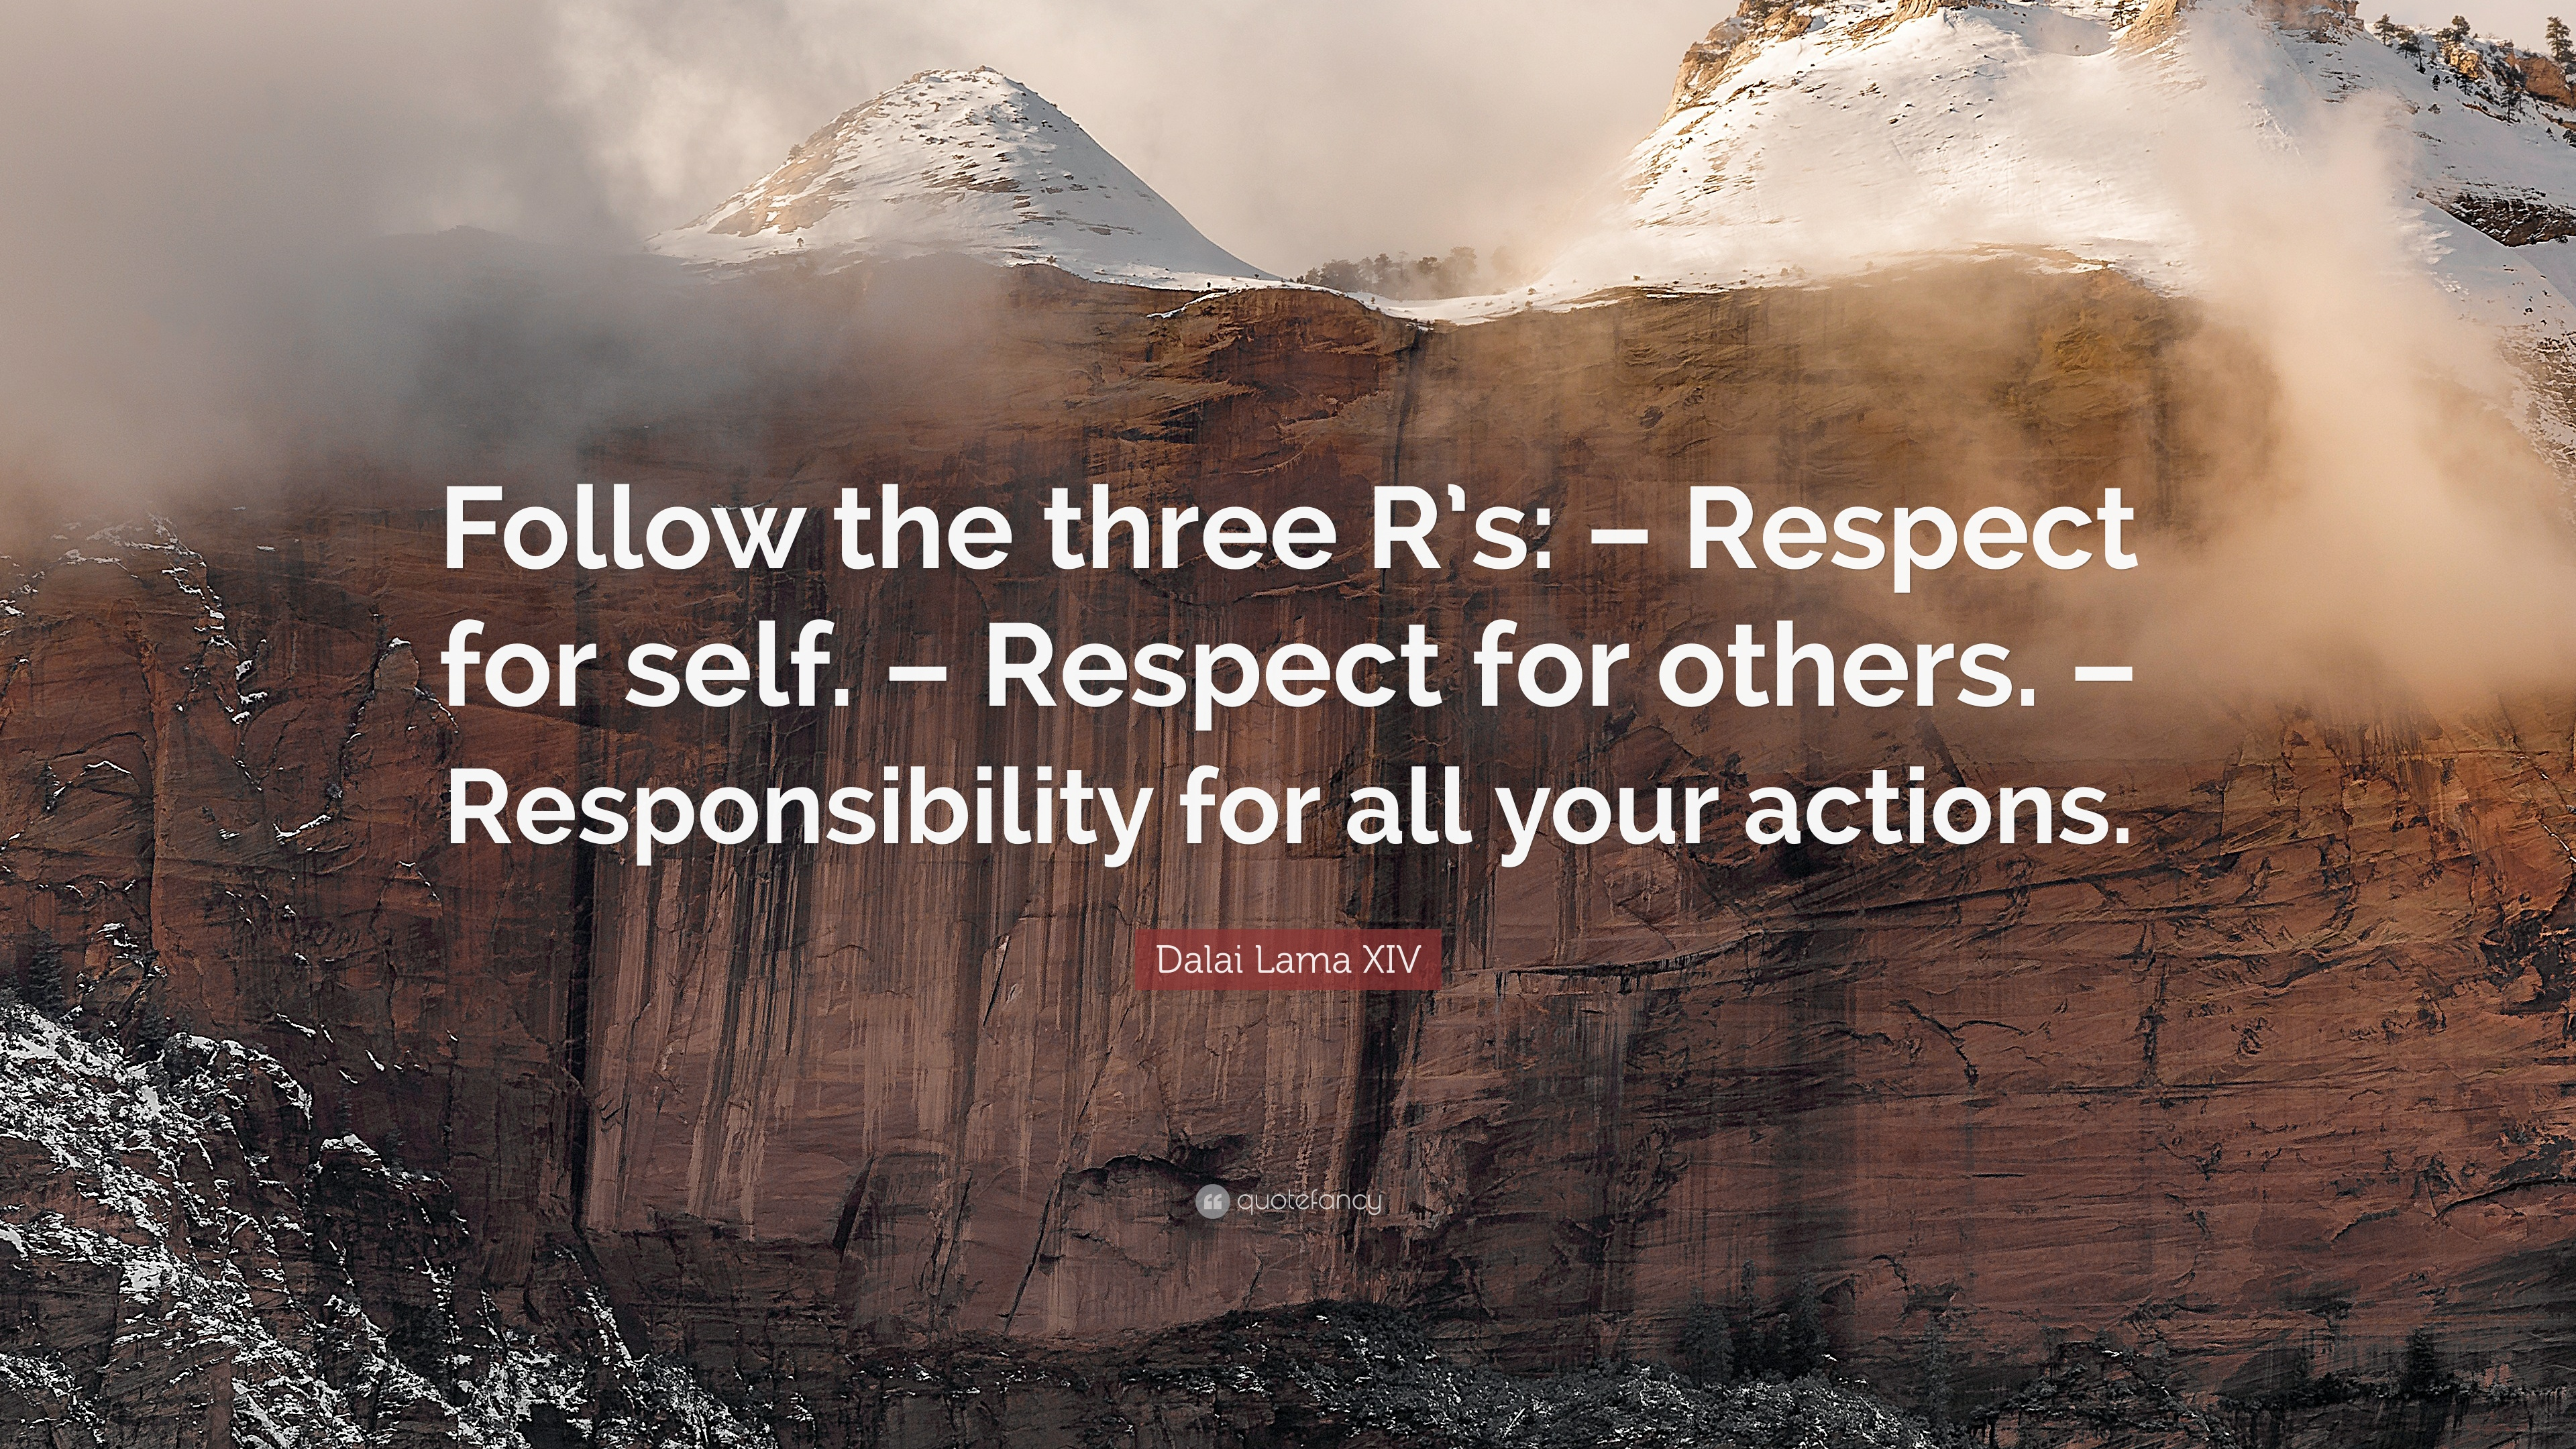 Motivational Quotes On Attitude Wallpapers Dalai Lama Xiv Quote Follow The Three R S Respect For